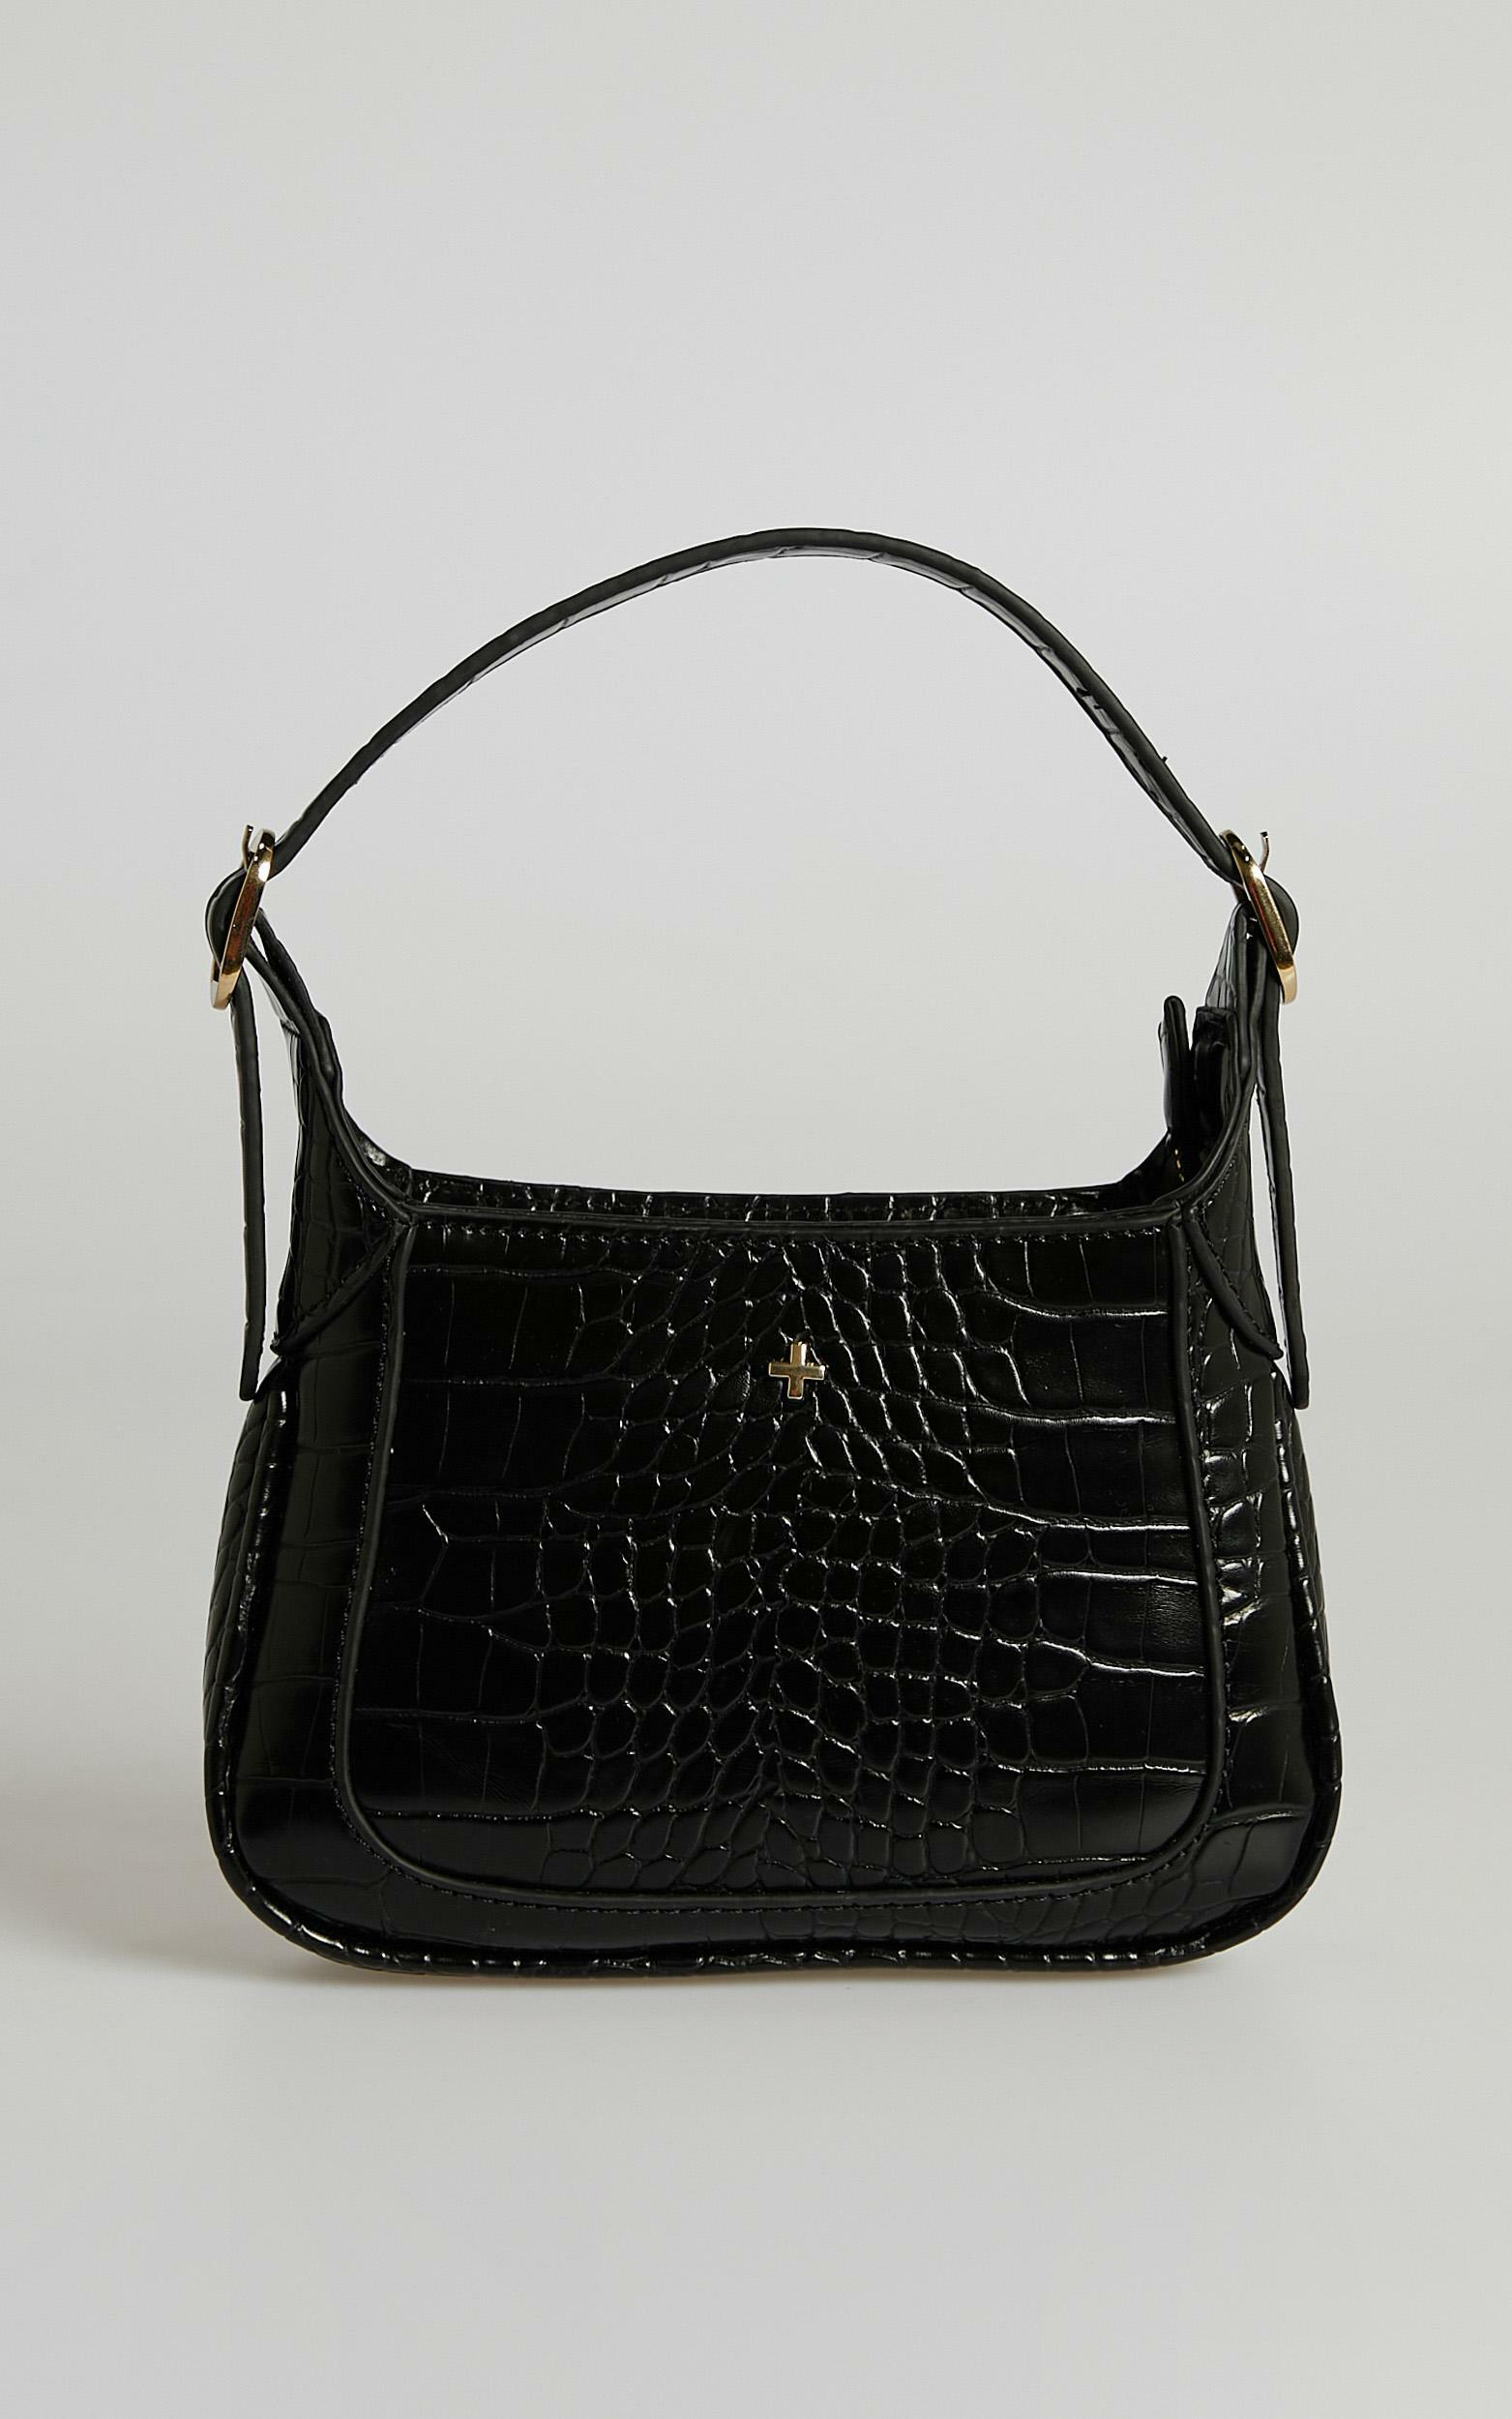 Peta and Jain - Gaga Bag in Black Croc, , hi-res image number null